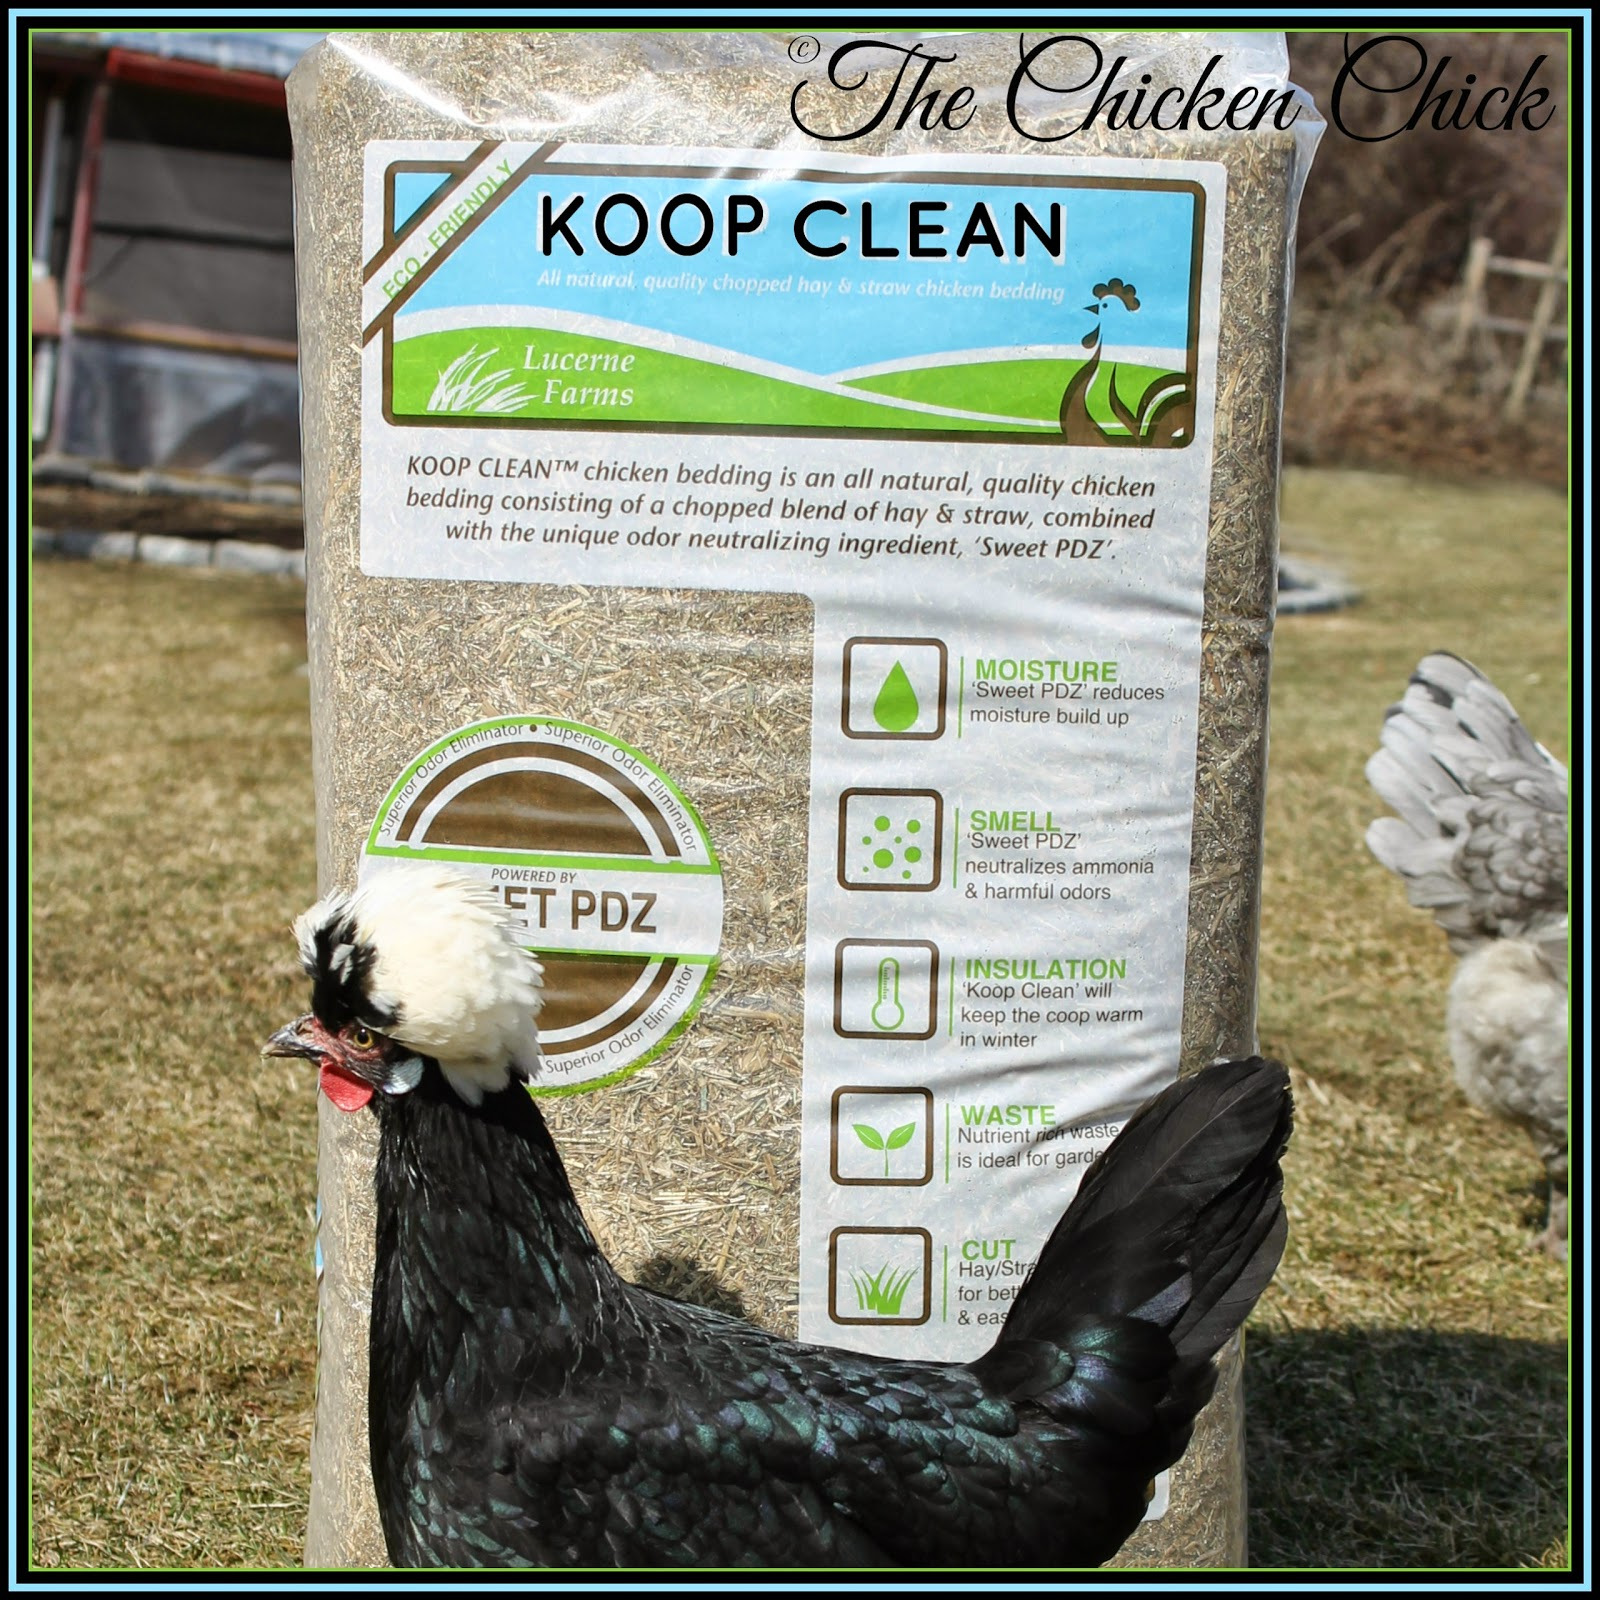 Koop Clean is an all natural chicken bedding comprised of chopped hay, chopped straw and a unique, odor-neutralizing ingredient  called Sweet PDZ. Contains no chemicals, dyes or perfumes.